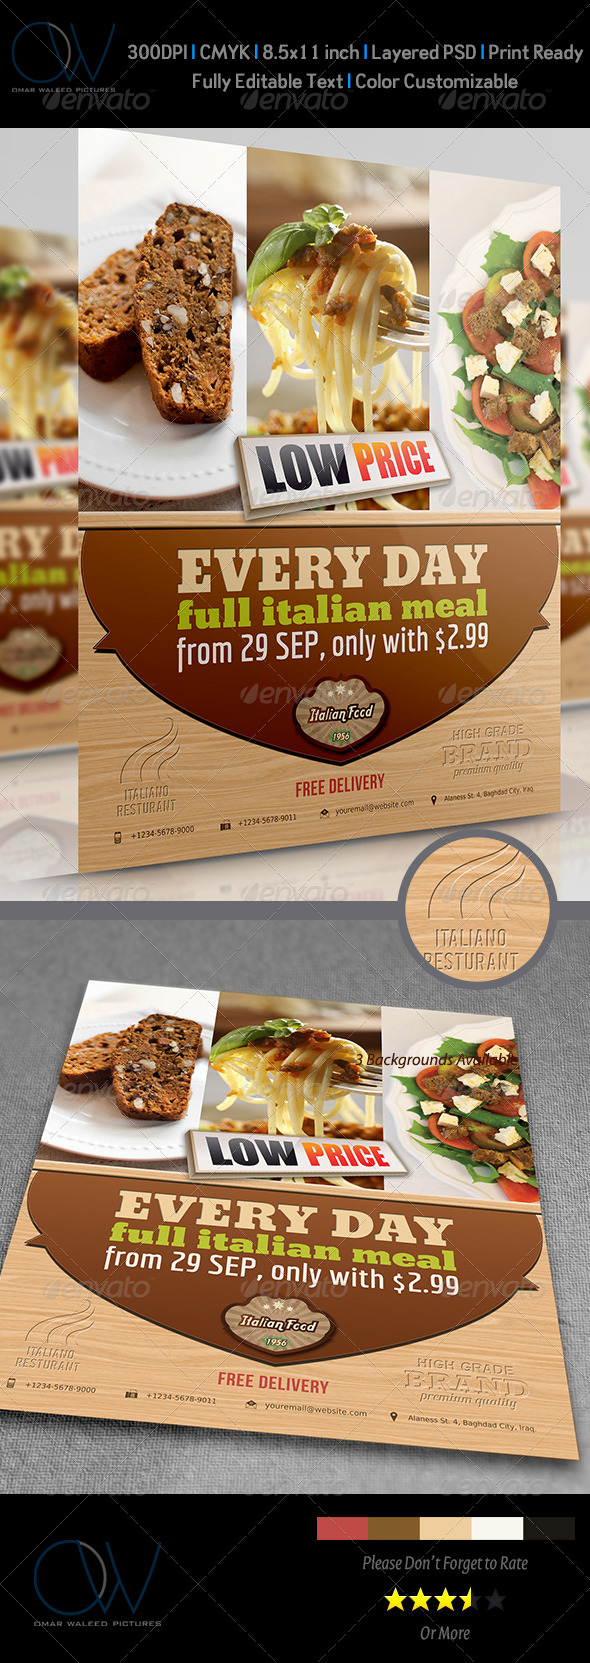 Italian Restaurant Flyer - Flyers Print Templates